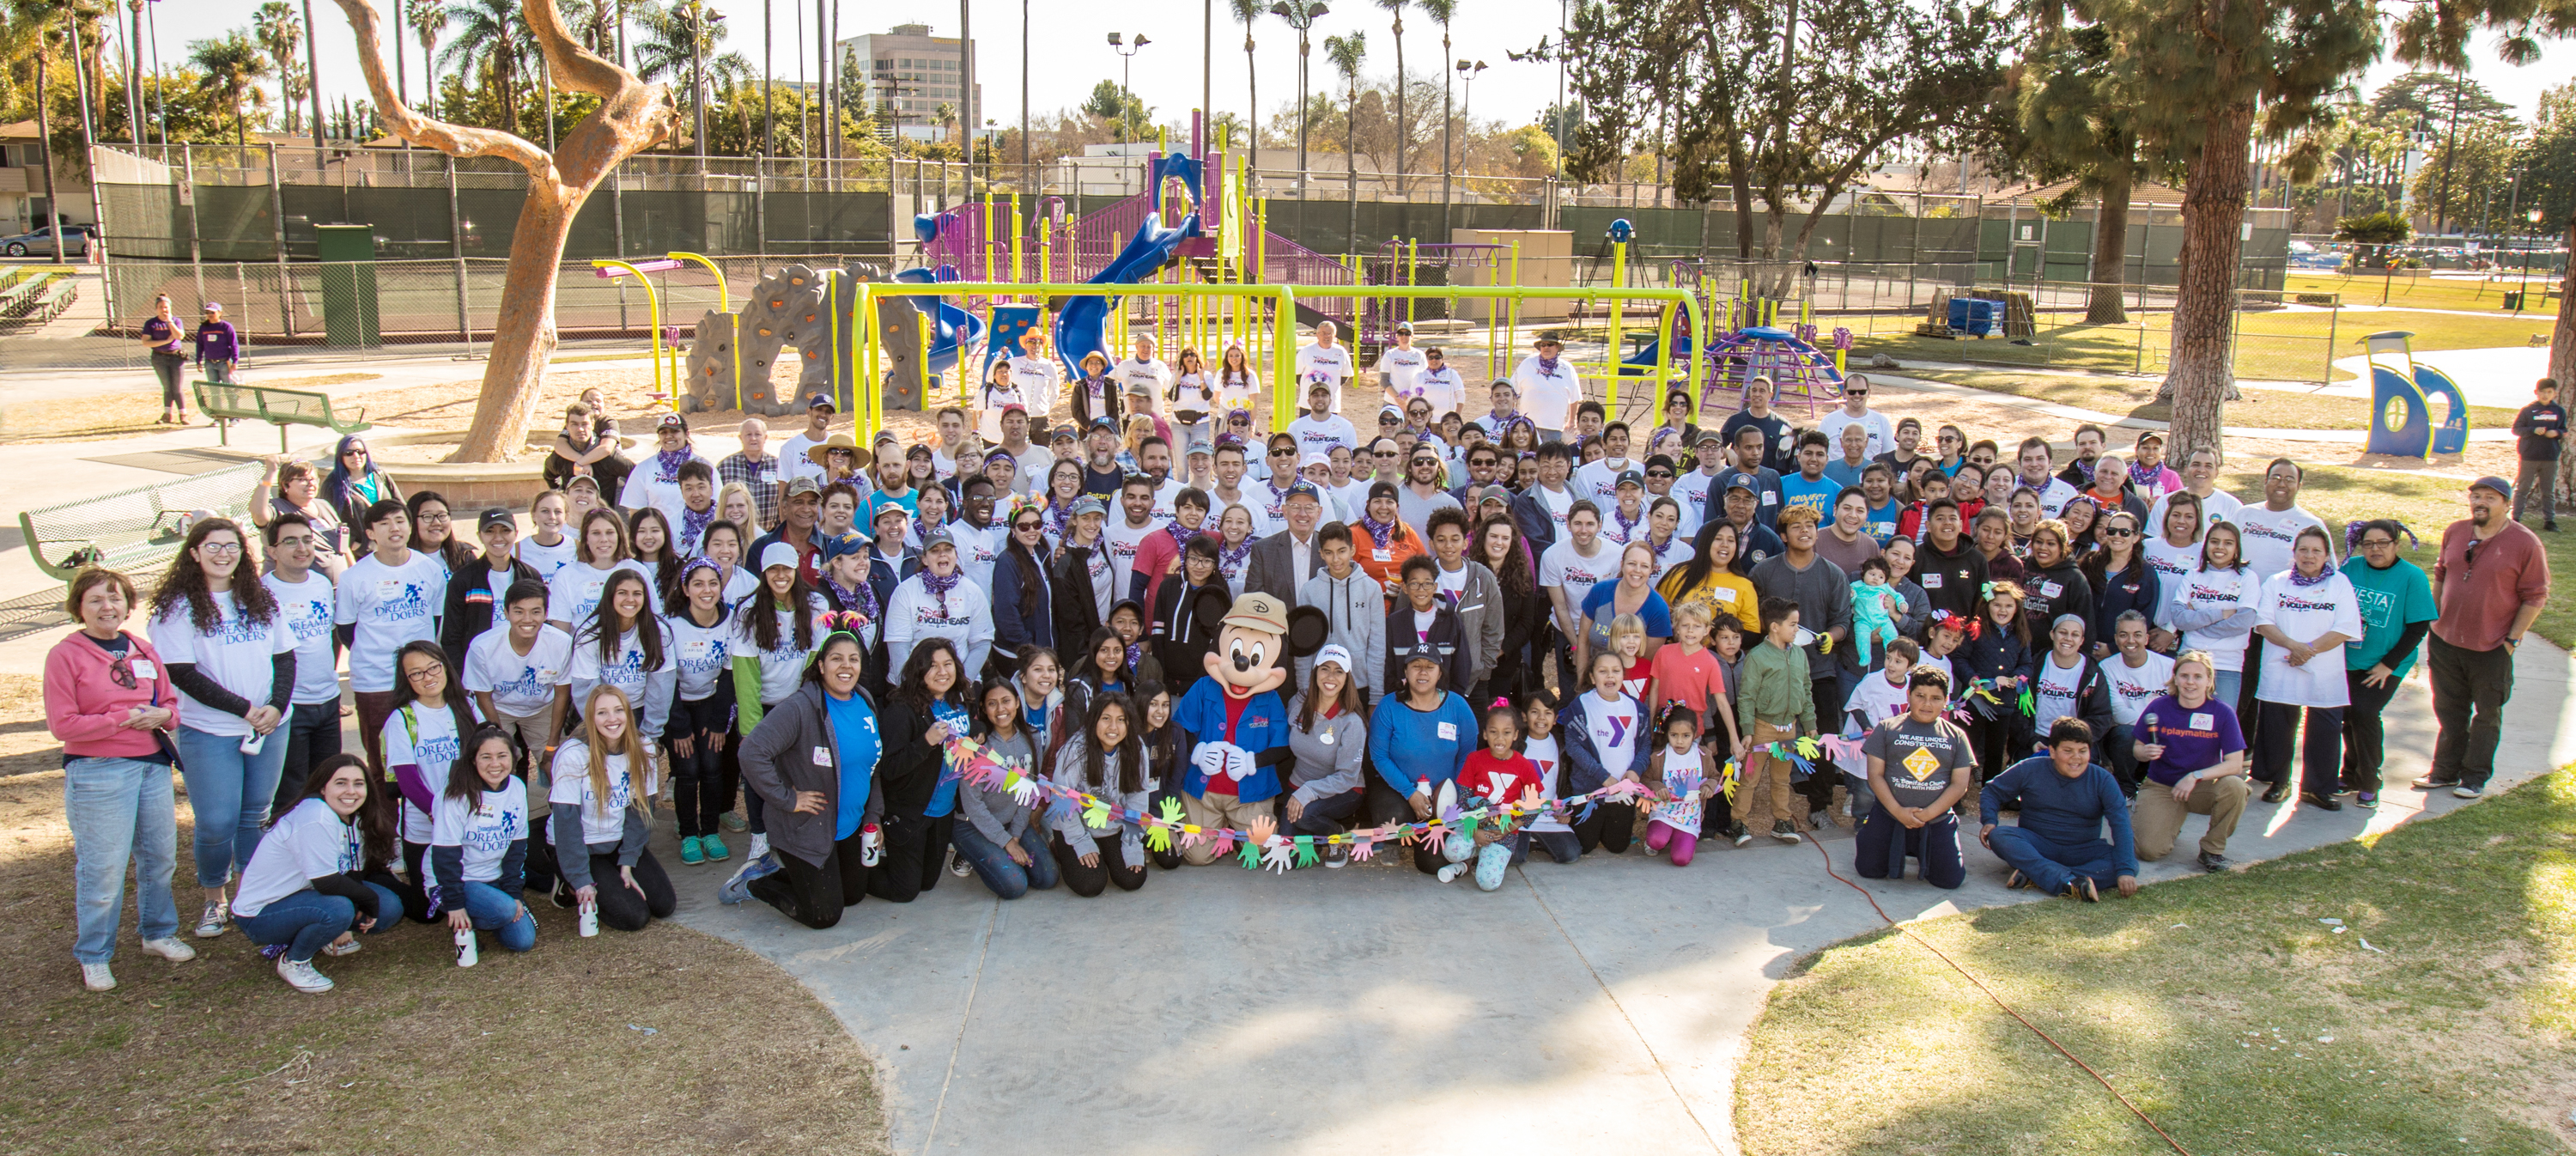 City of Anaheim, Anaheim Family YMCA, Disney and KaBOOM! Partner to Increase Play Opportunities for Anaheim Kids